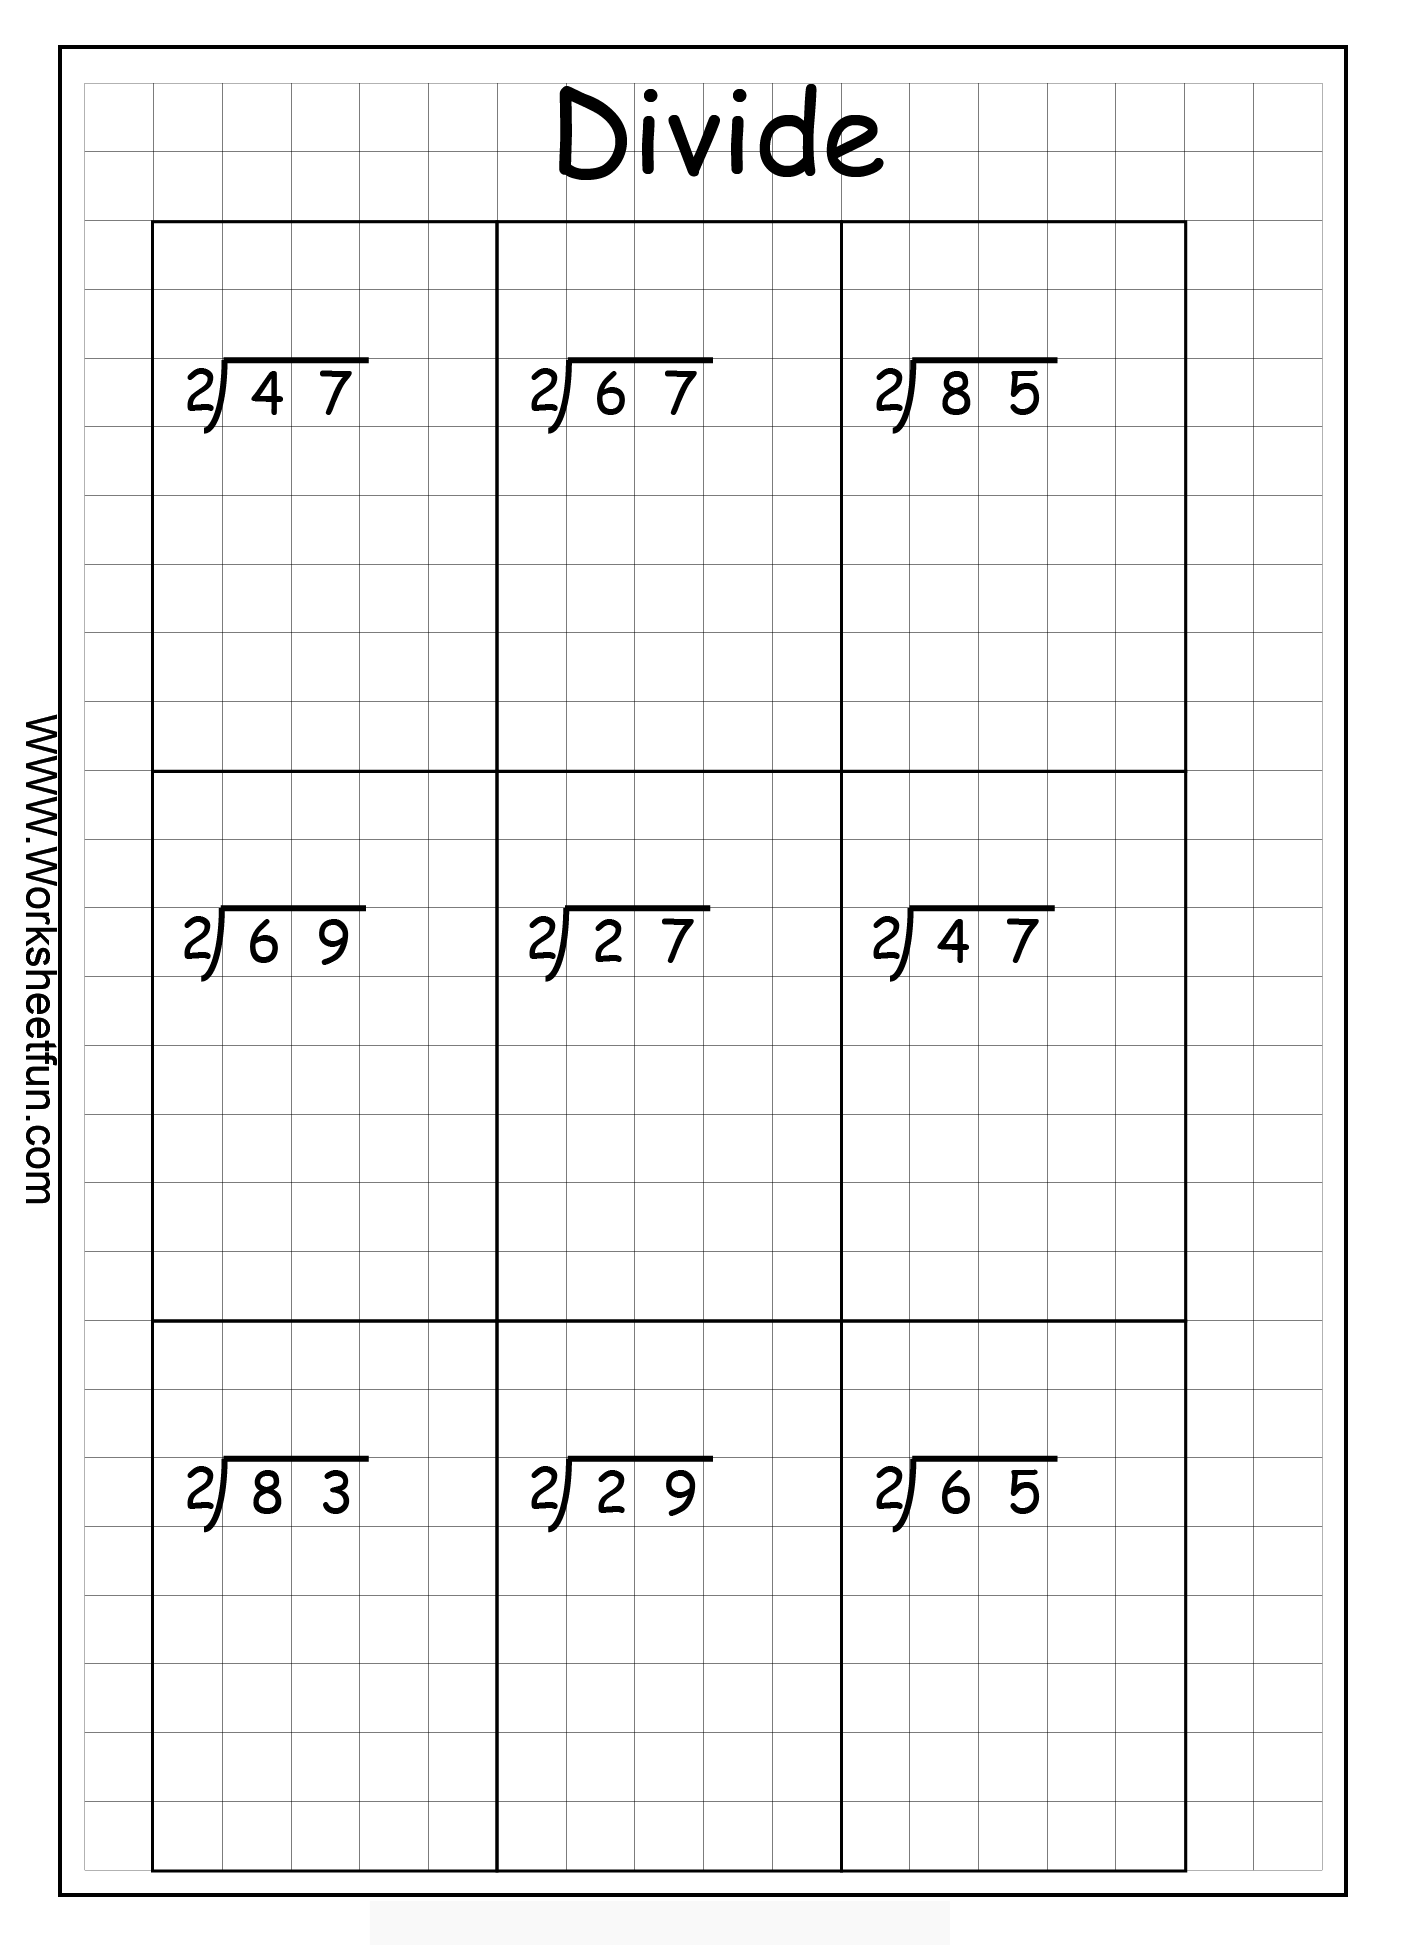 worksheet Division Without Remainders Worksheet dividing by 1 digit divisor lessons tes teach long division 2 digits with remainders 8